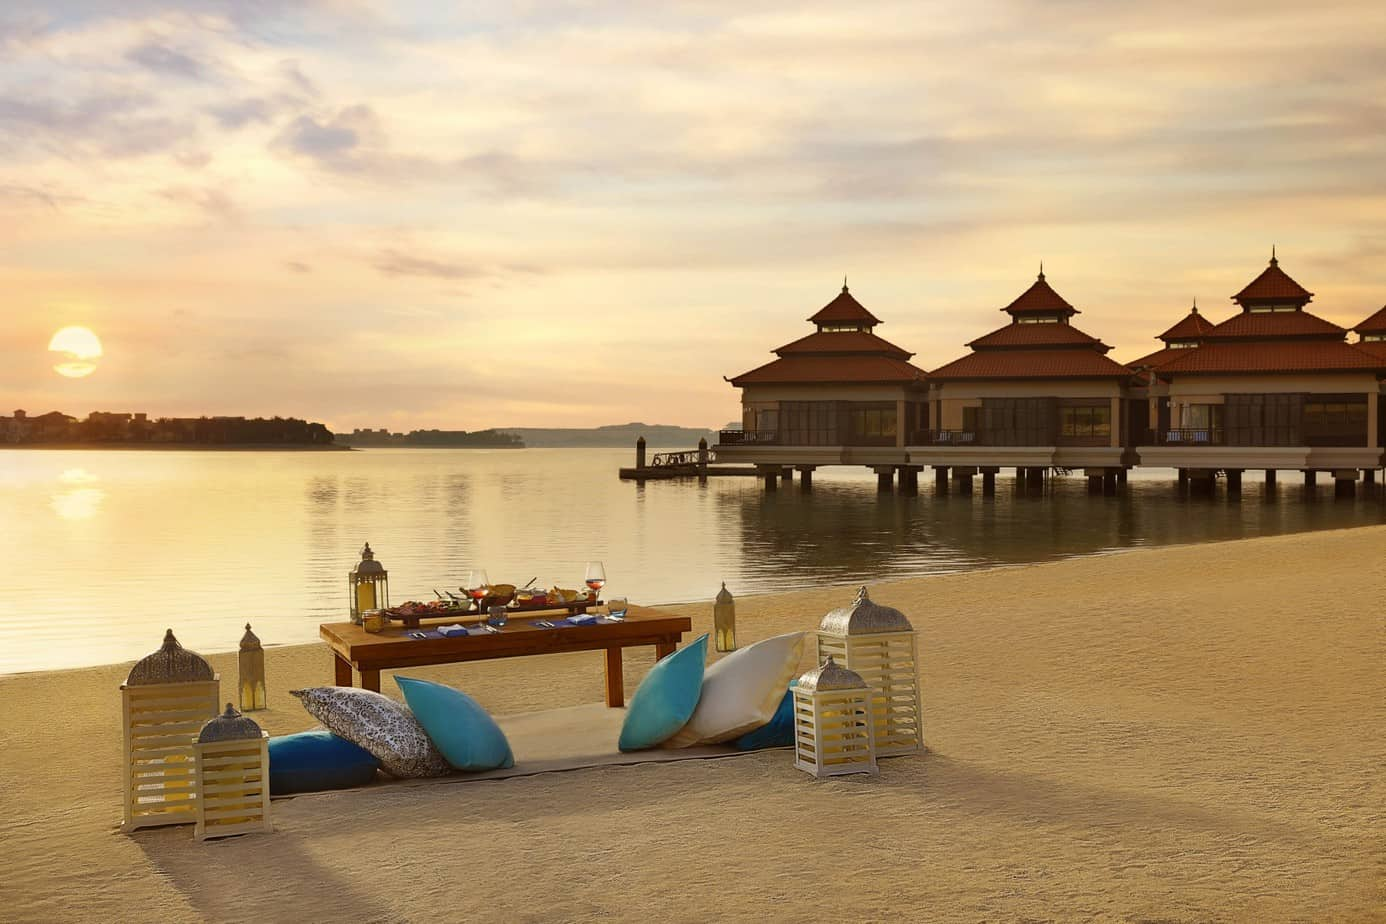 Anantara-The-Palm-Dubai-Sunset-Dining-02-3MB